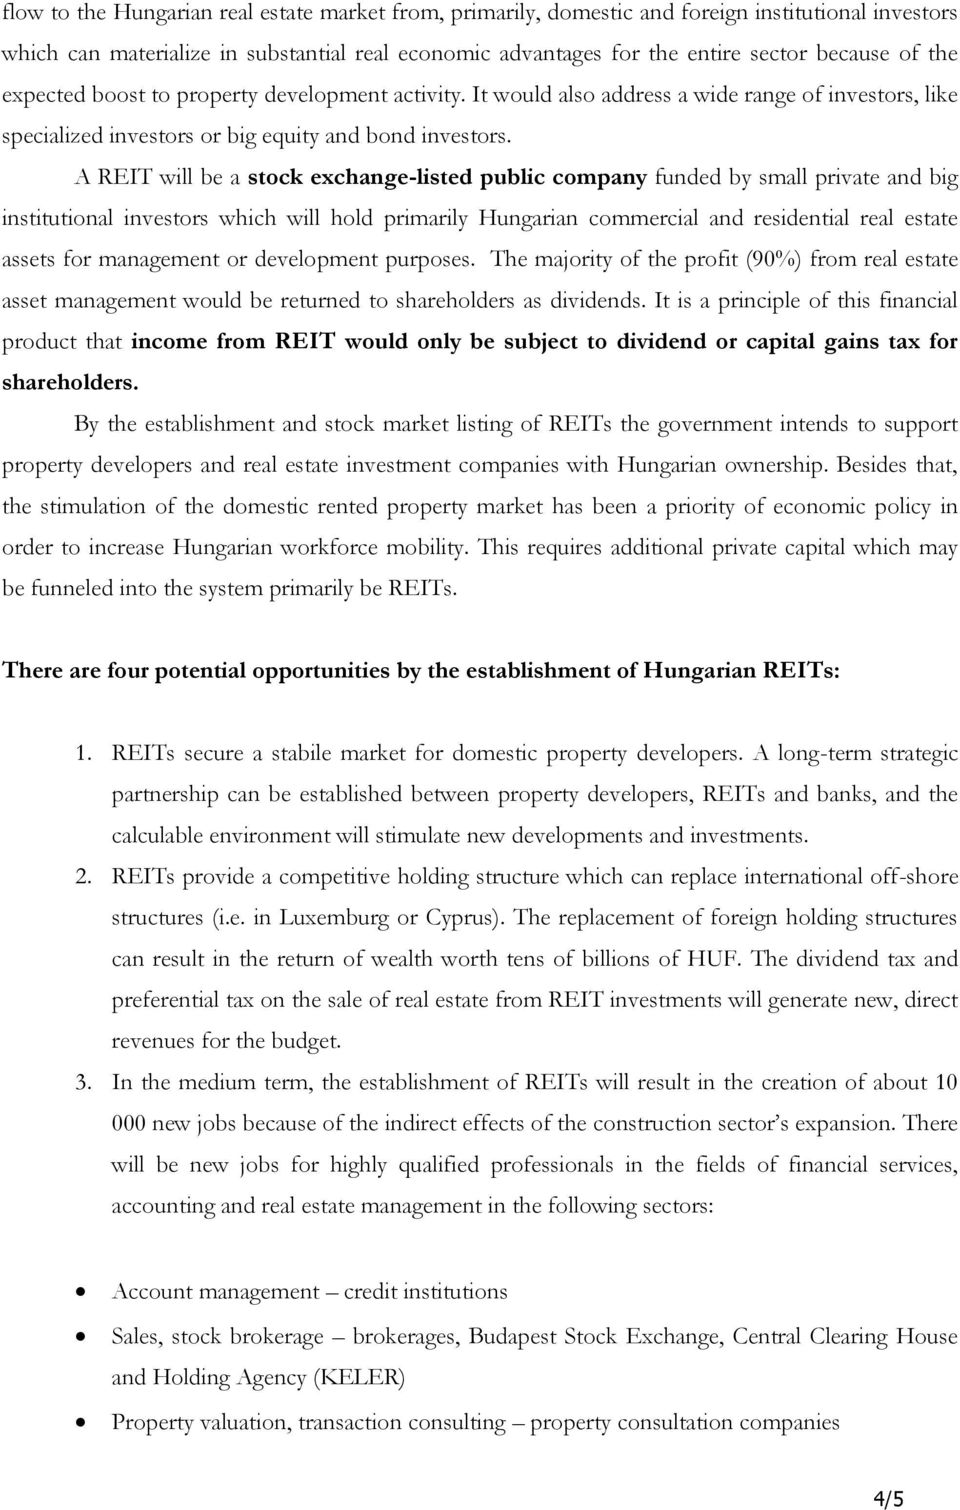 A REIT will be a stock exchange-listed public company funded by small private and big institutional investors which will hold primarily Hungarian commercial and residential real estate assets for